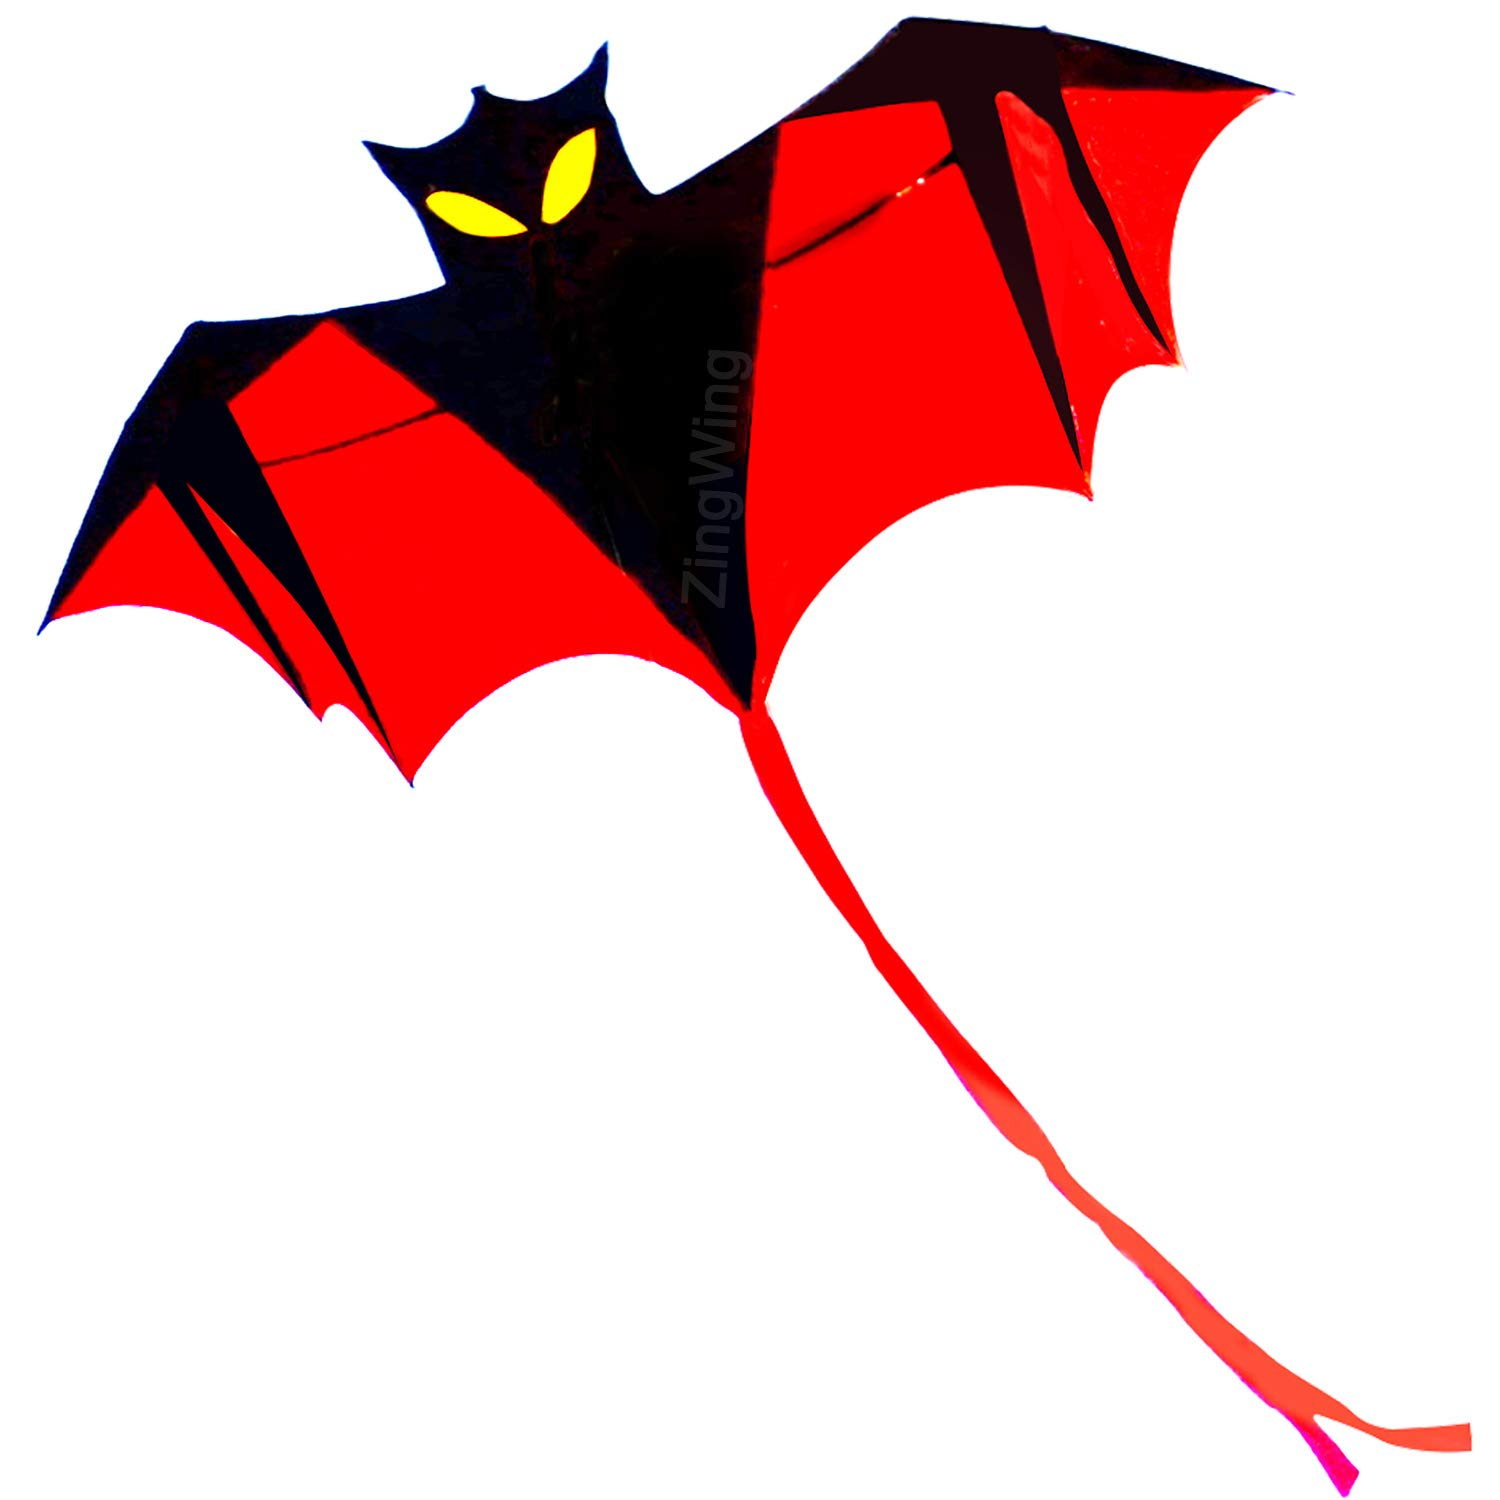 ziwing Kites for Kids Boys The Beach, 3D Bat Kite Easy to Fly Outside Best Outdoor Toys in Summer Park Family Fun - Easy to Assemble for Kids